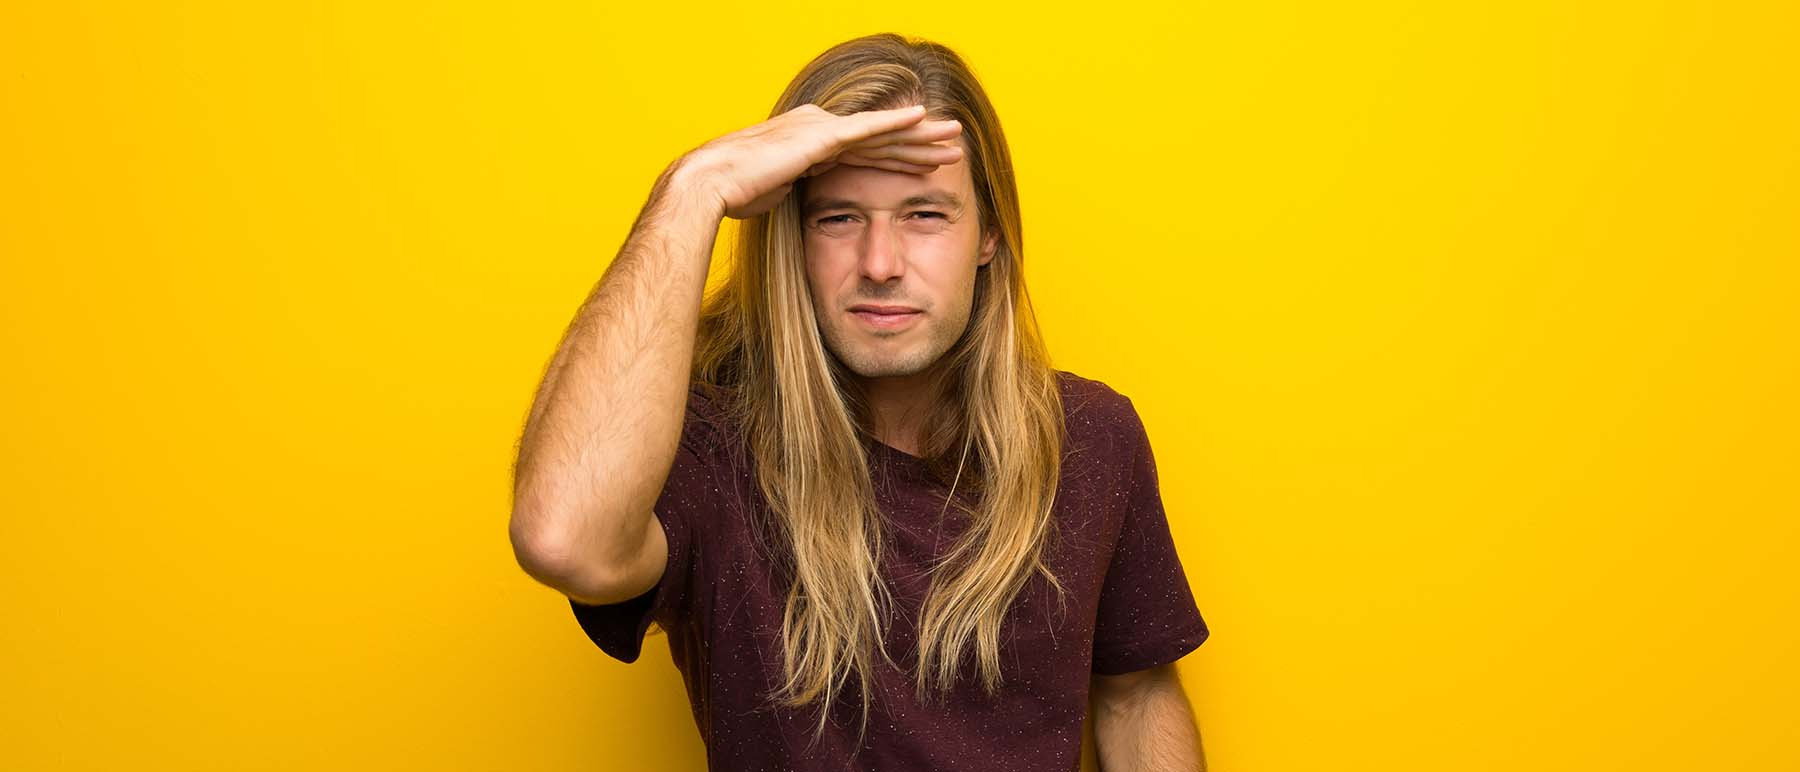 Long hair bro looking for help from The Longhairs Bro Support